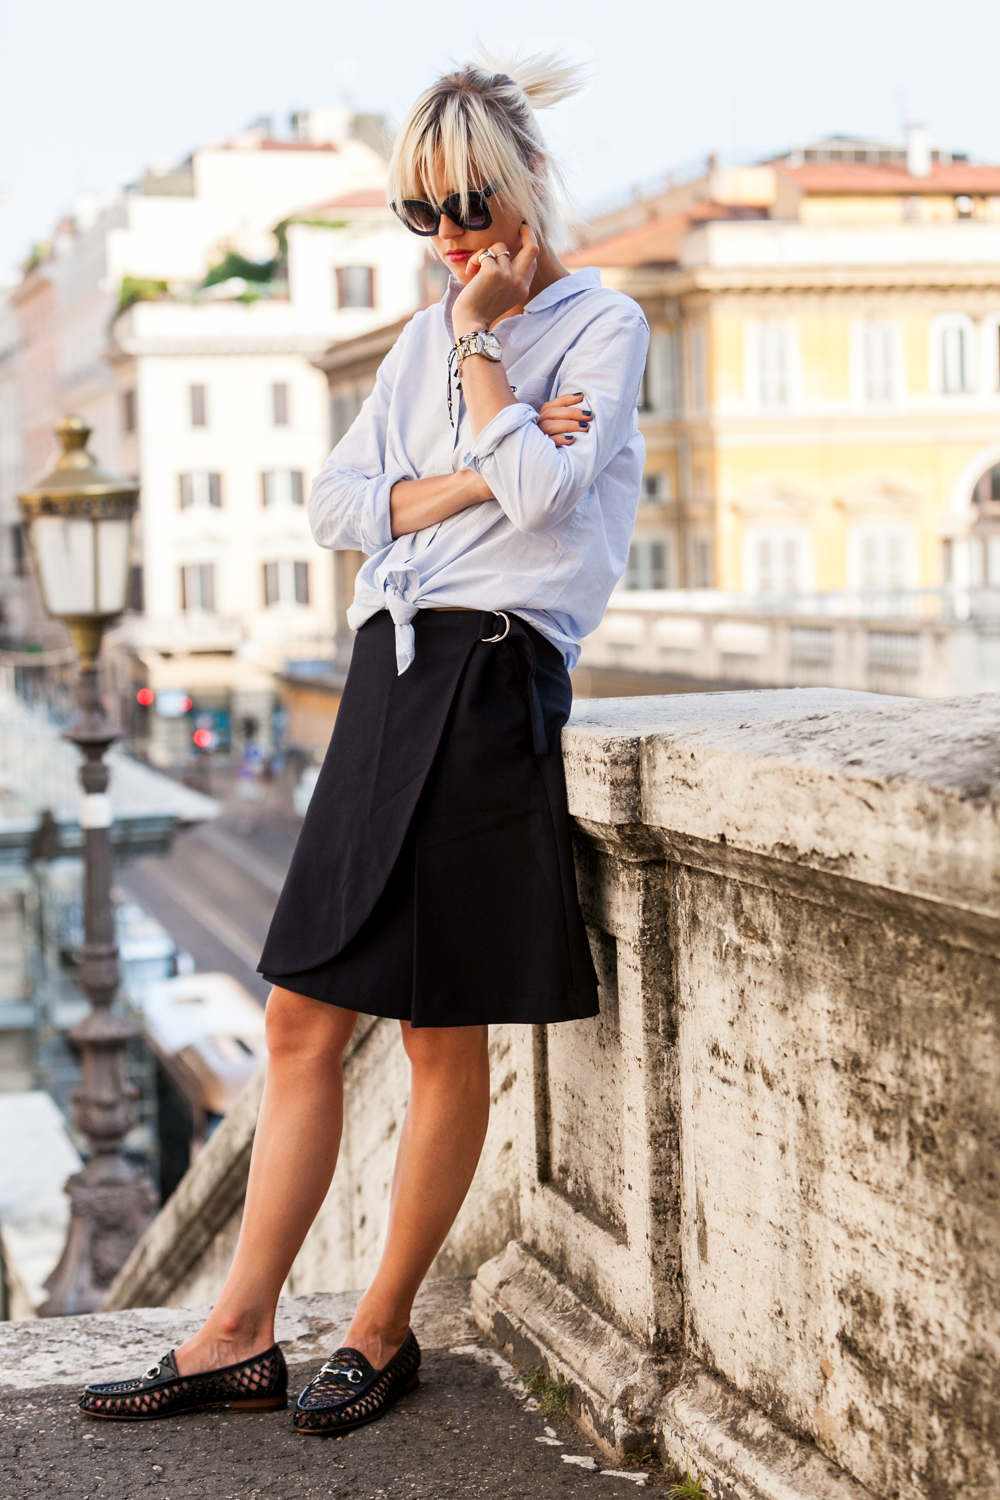 Pale blue boyfriend skirt, dark navy skirt and shoes to die for. Via Linda Tol Shirt: Ganni, Skirt: Filippa K, Sunglasses: Celine, Shoes: Gucci.